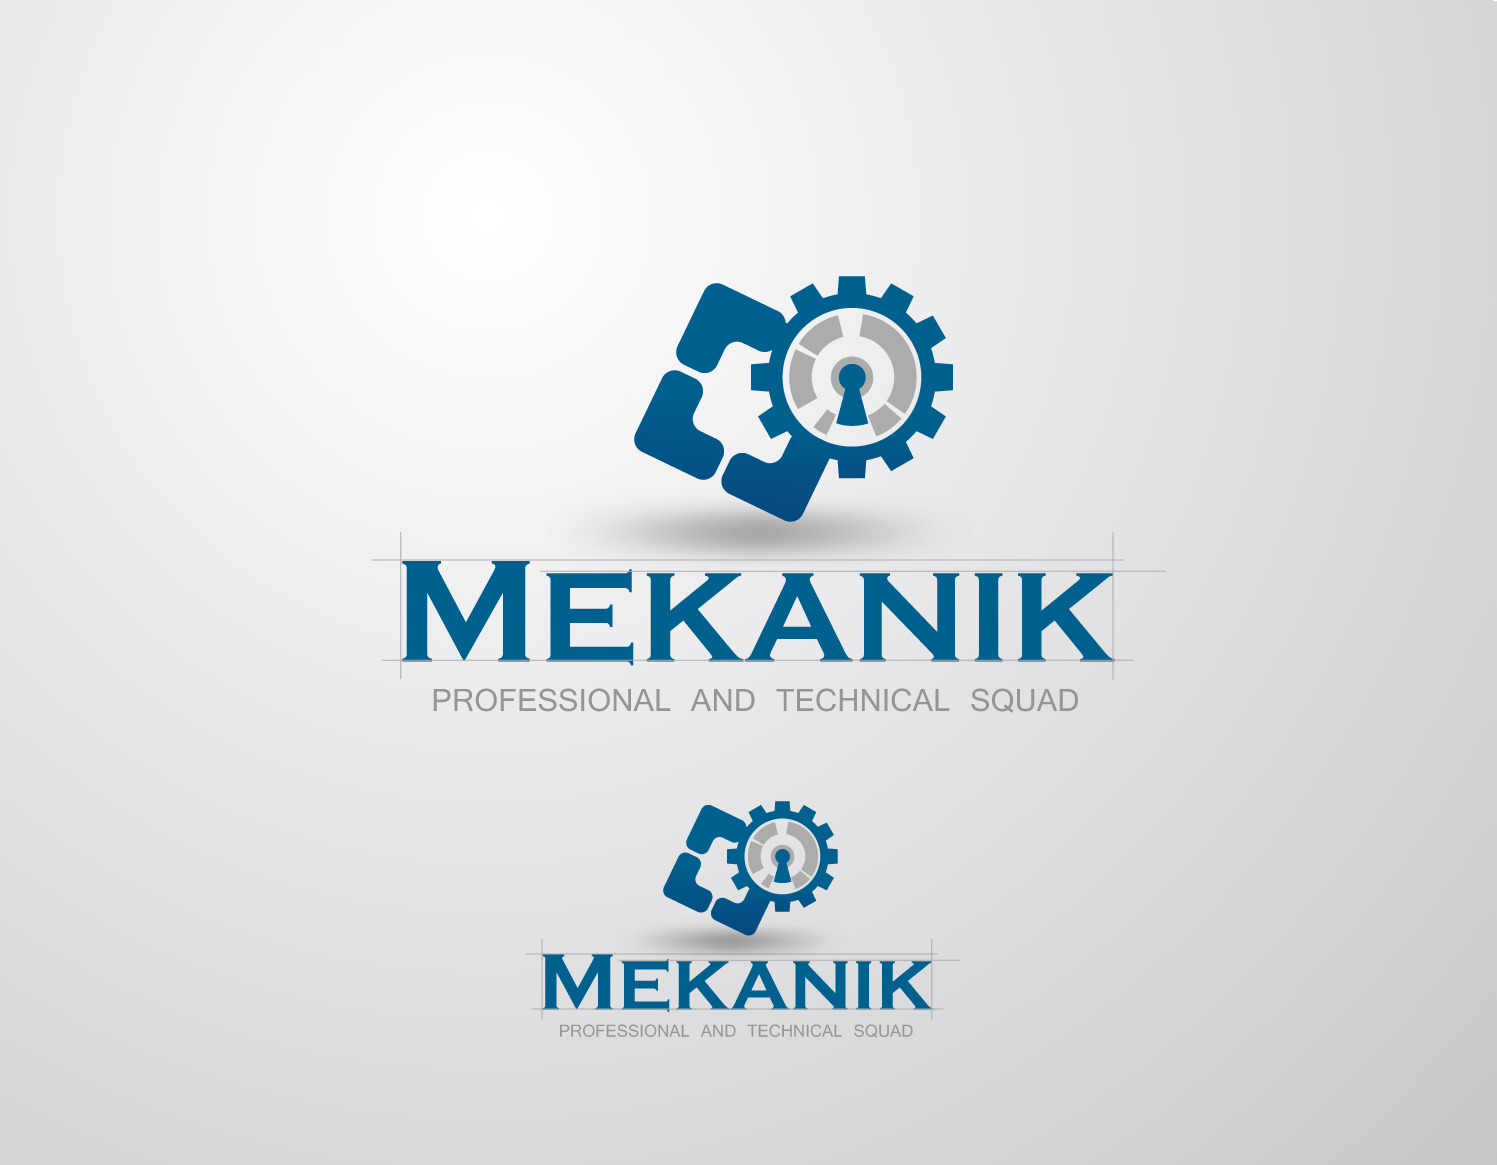 Logo Design by Mark Anthony Moreto Jordan - Entry No. 149 in the Logo Design Contest Creative Logo Design for MËKANIC - Professional and technical squad.